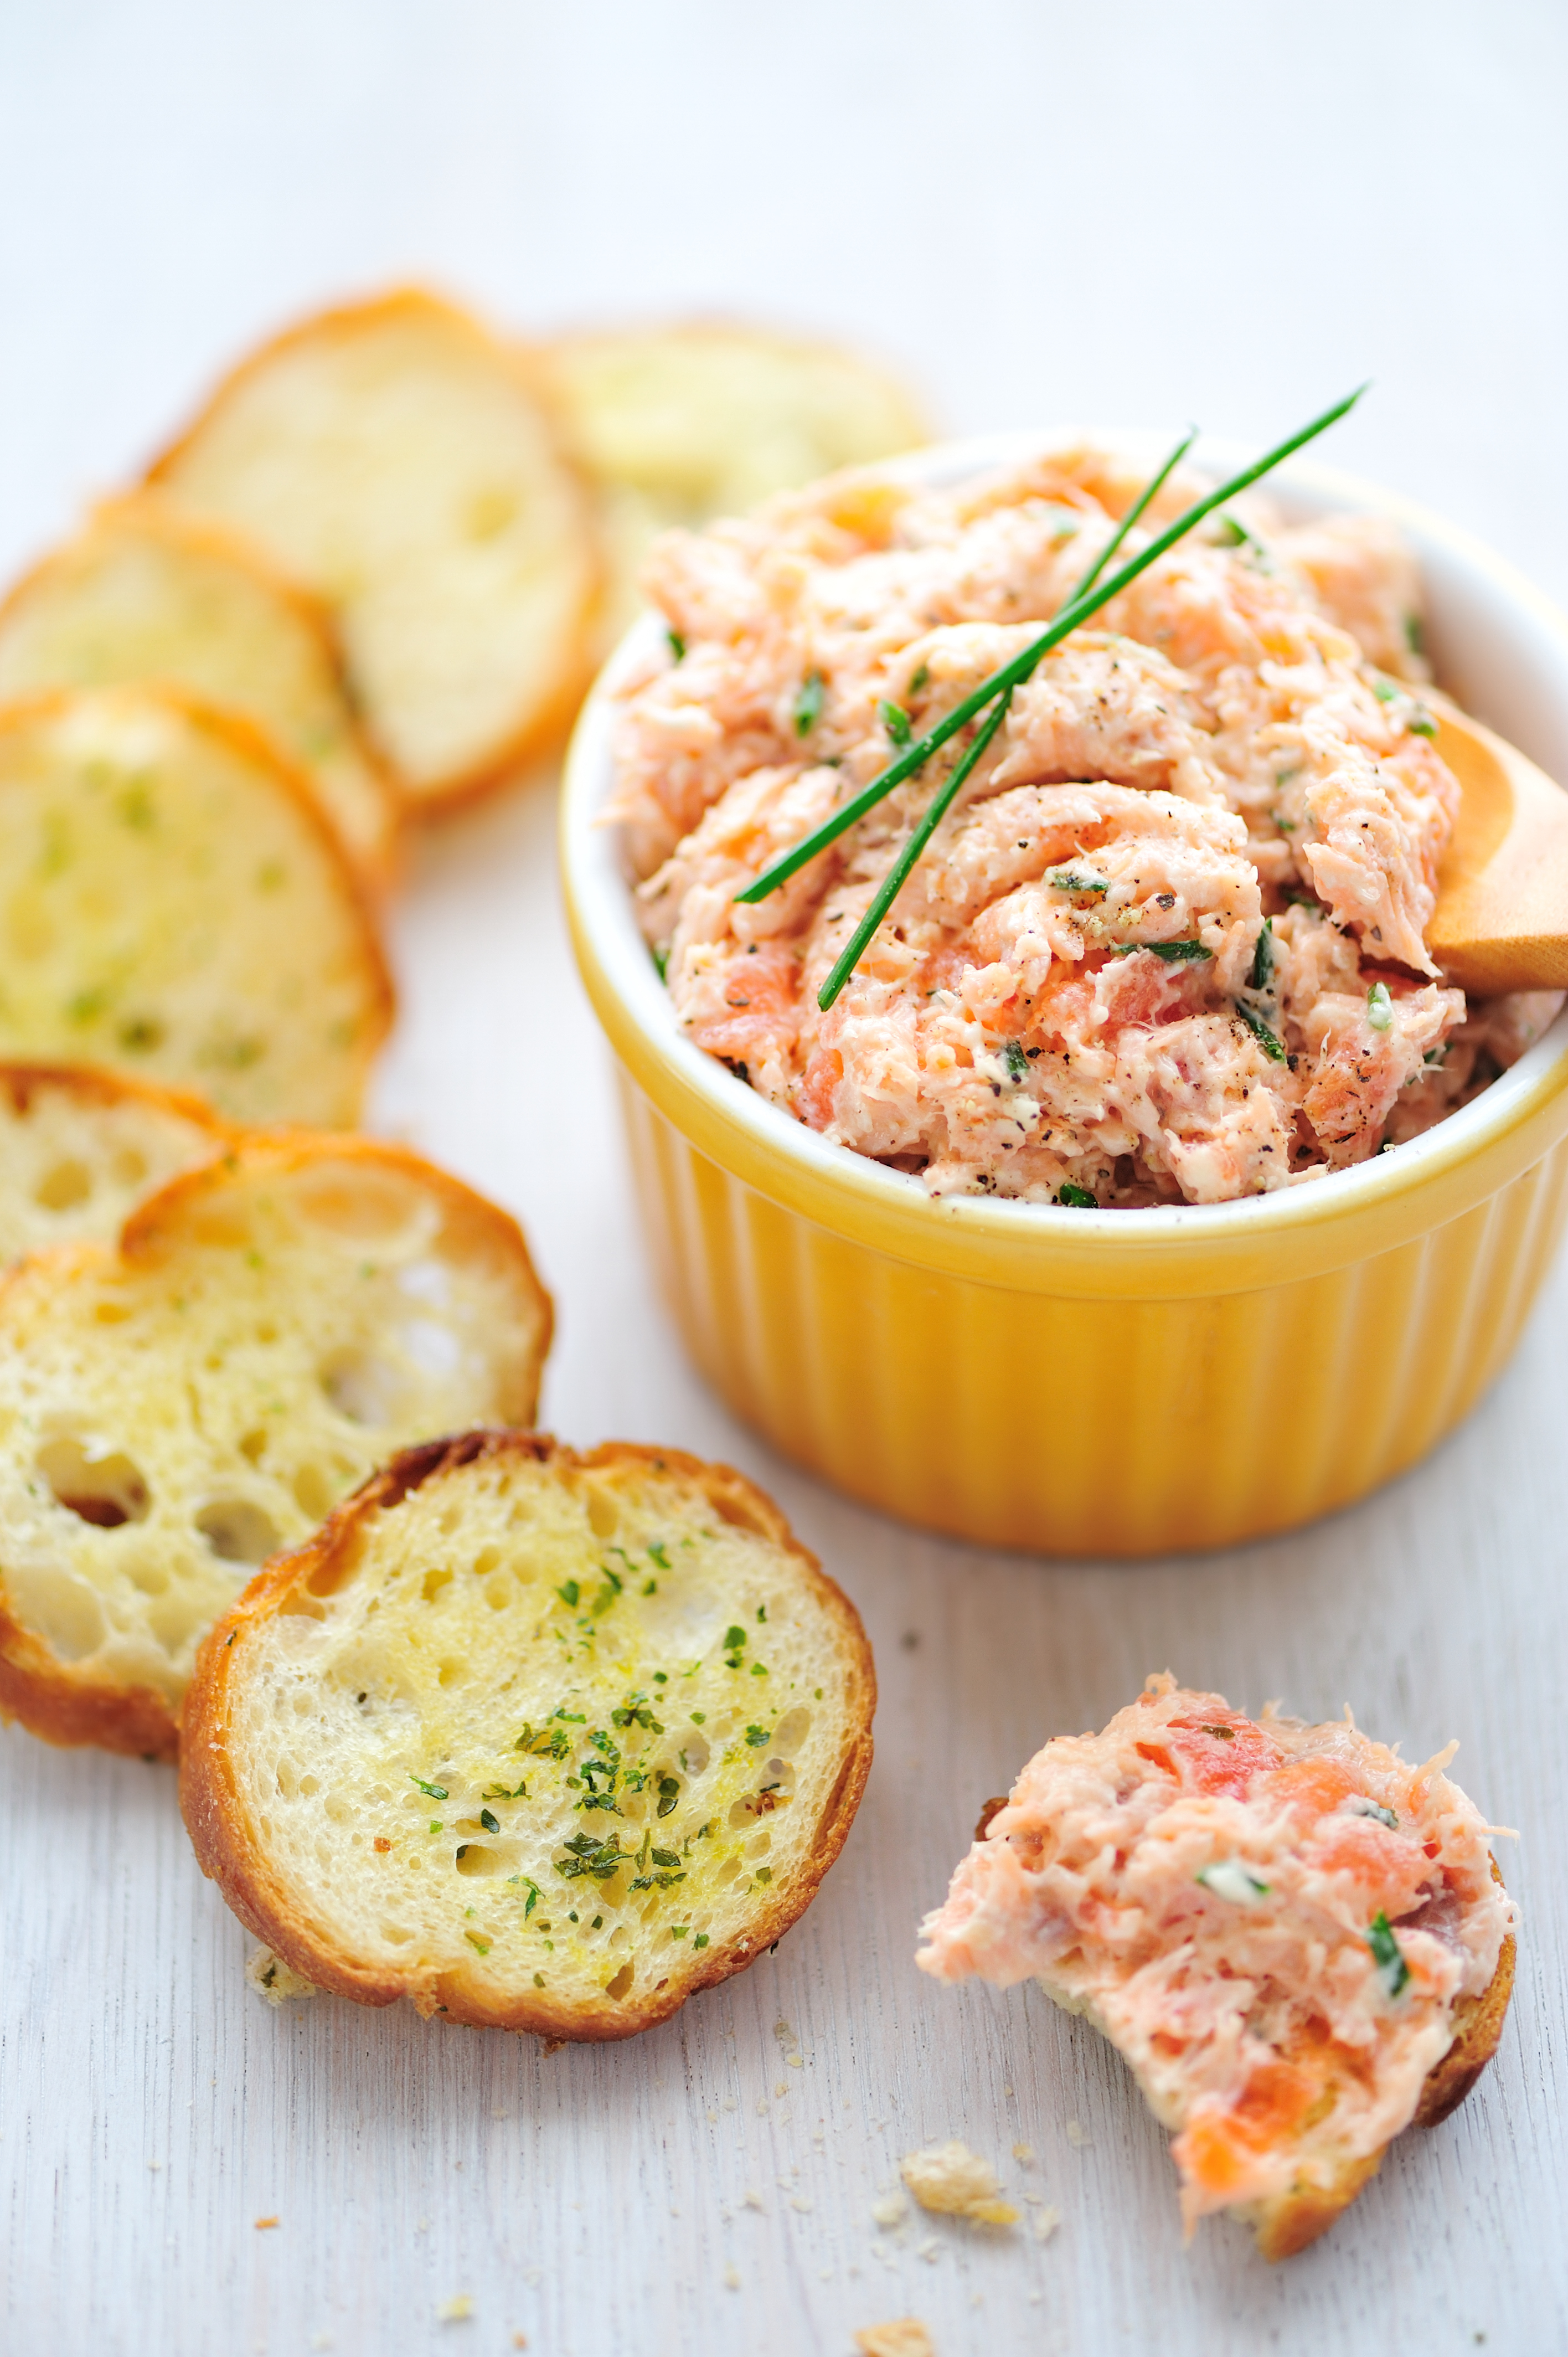 Salmon Rillette Served with Garlic Toasts